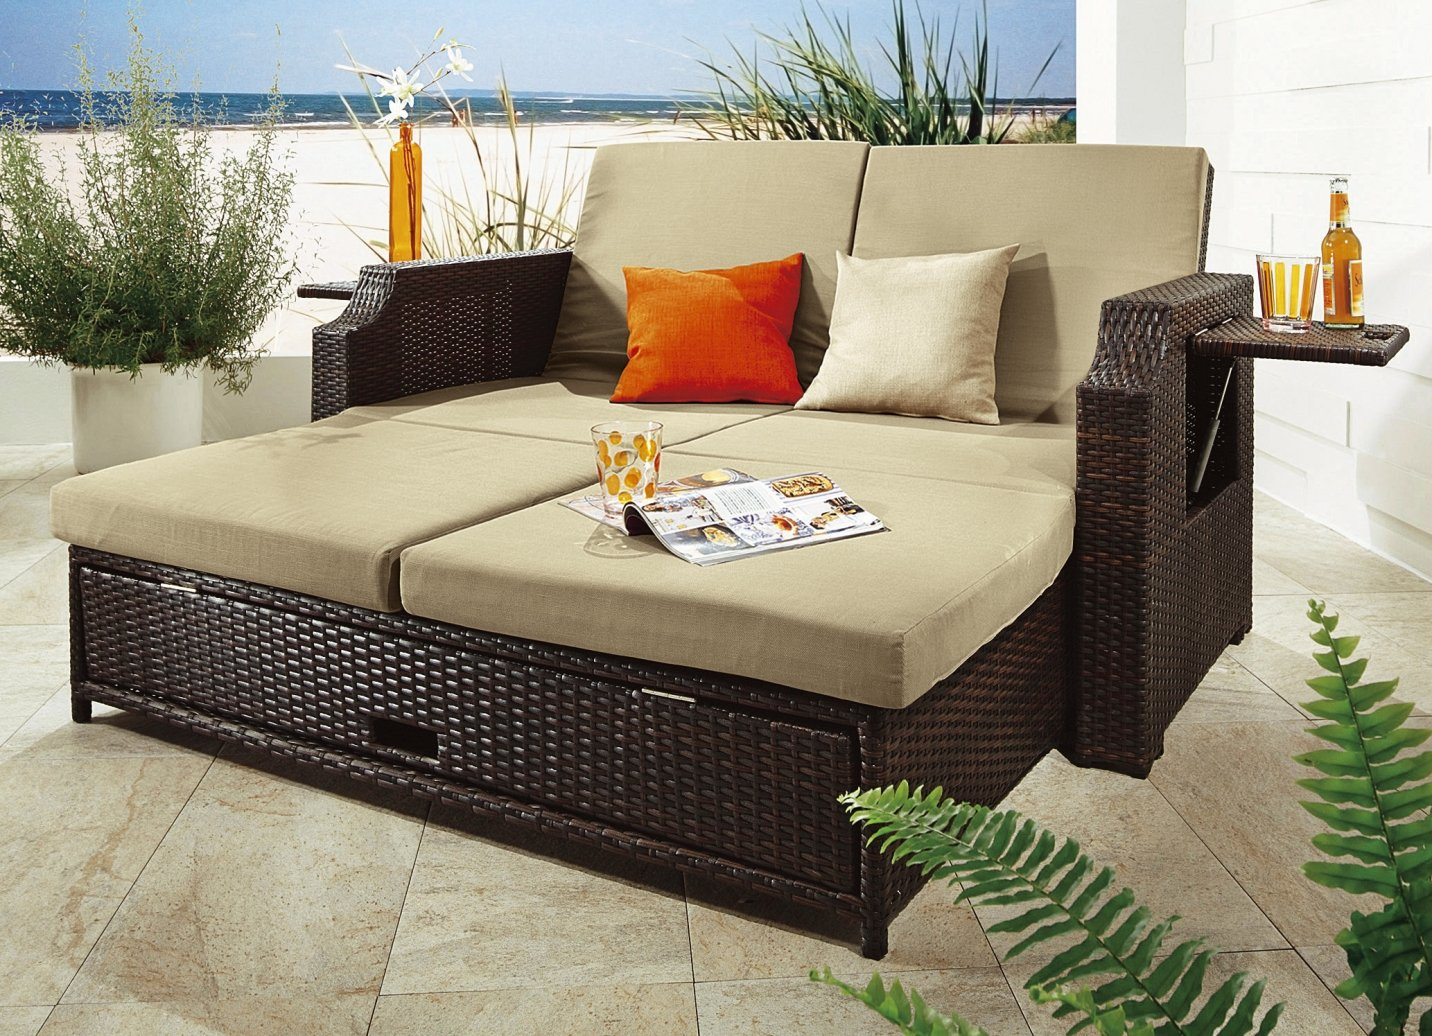 lounge sofa rattan monaco multifunktionssofa relaxliege relaxsofa gartenm bel ebay. Black Bedroom Furniture Sets. Home Design Ideas